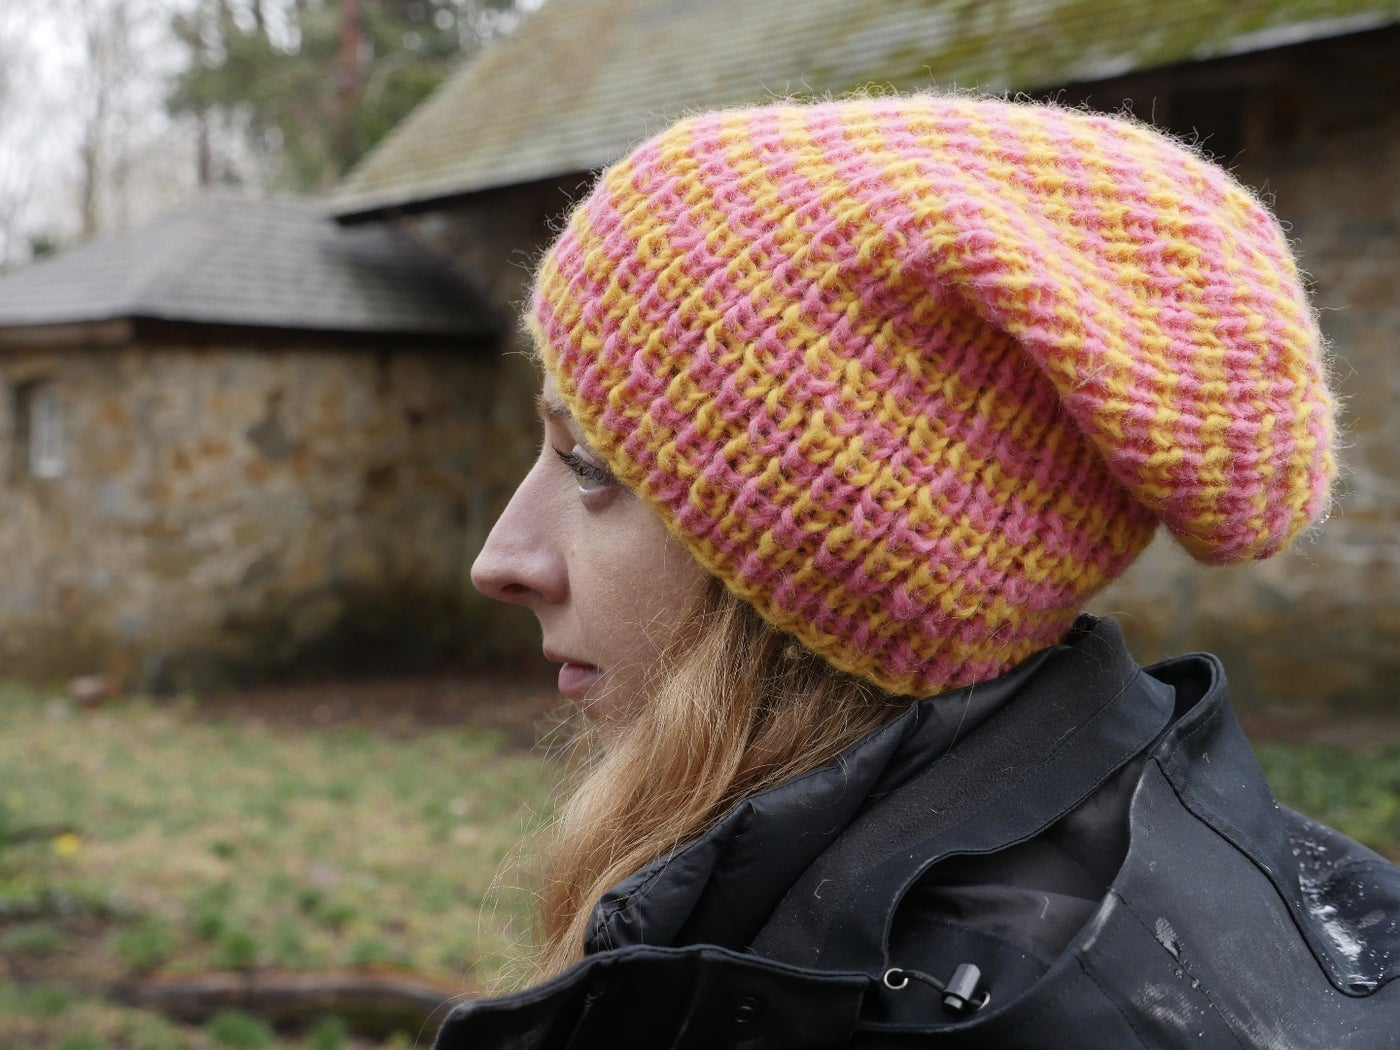 First Hat: Knitting in the Round